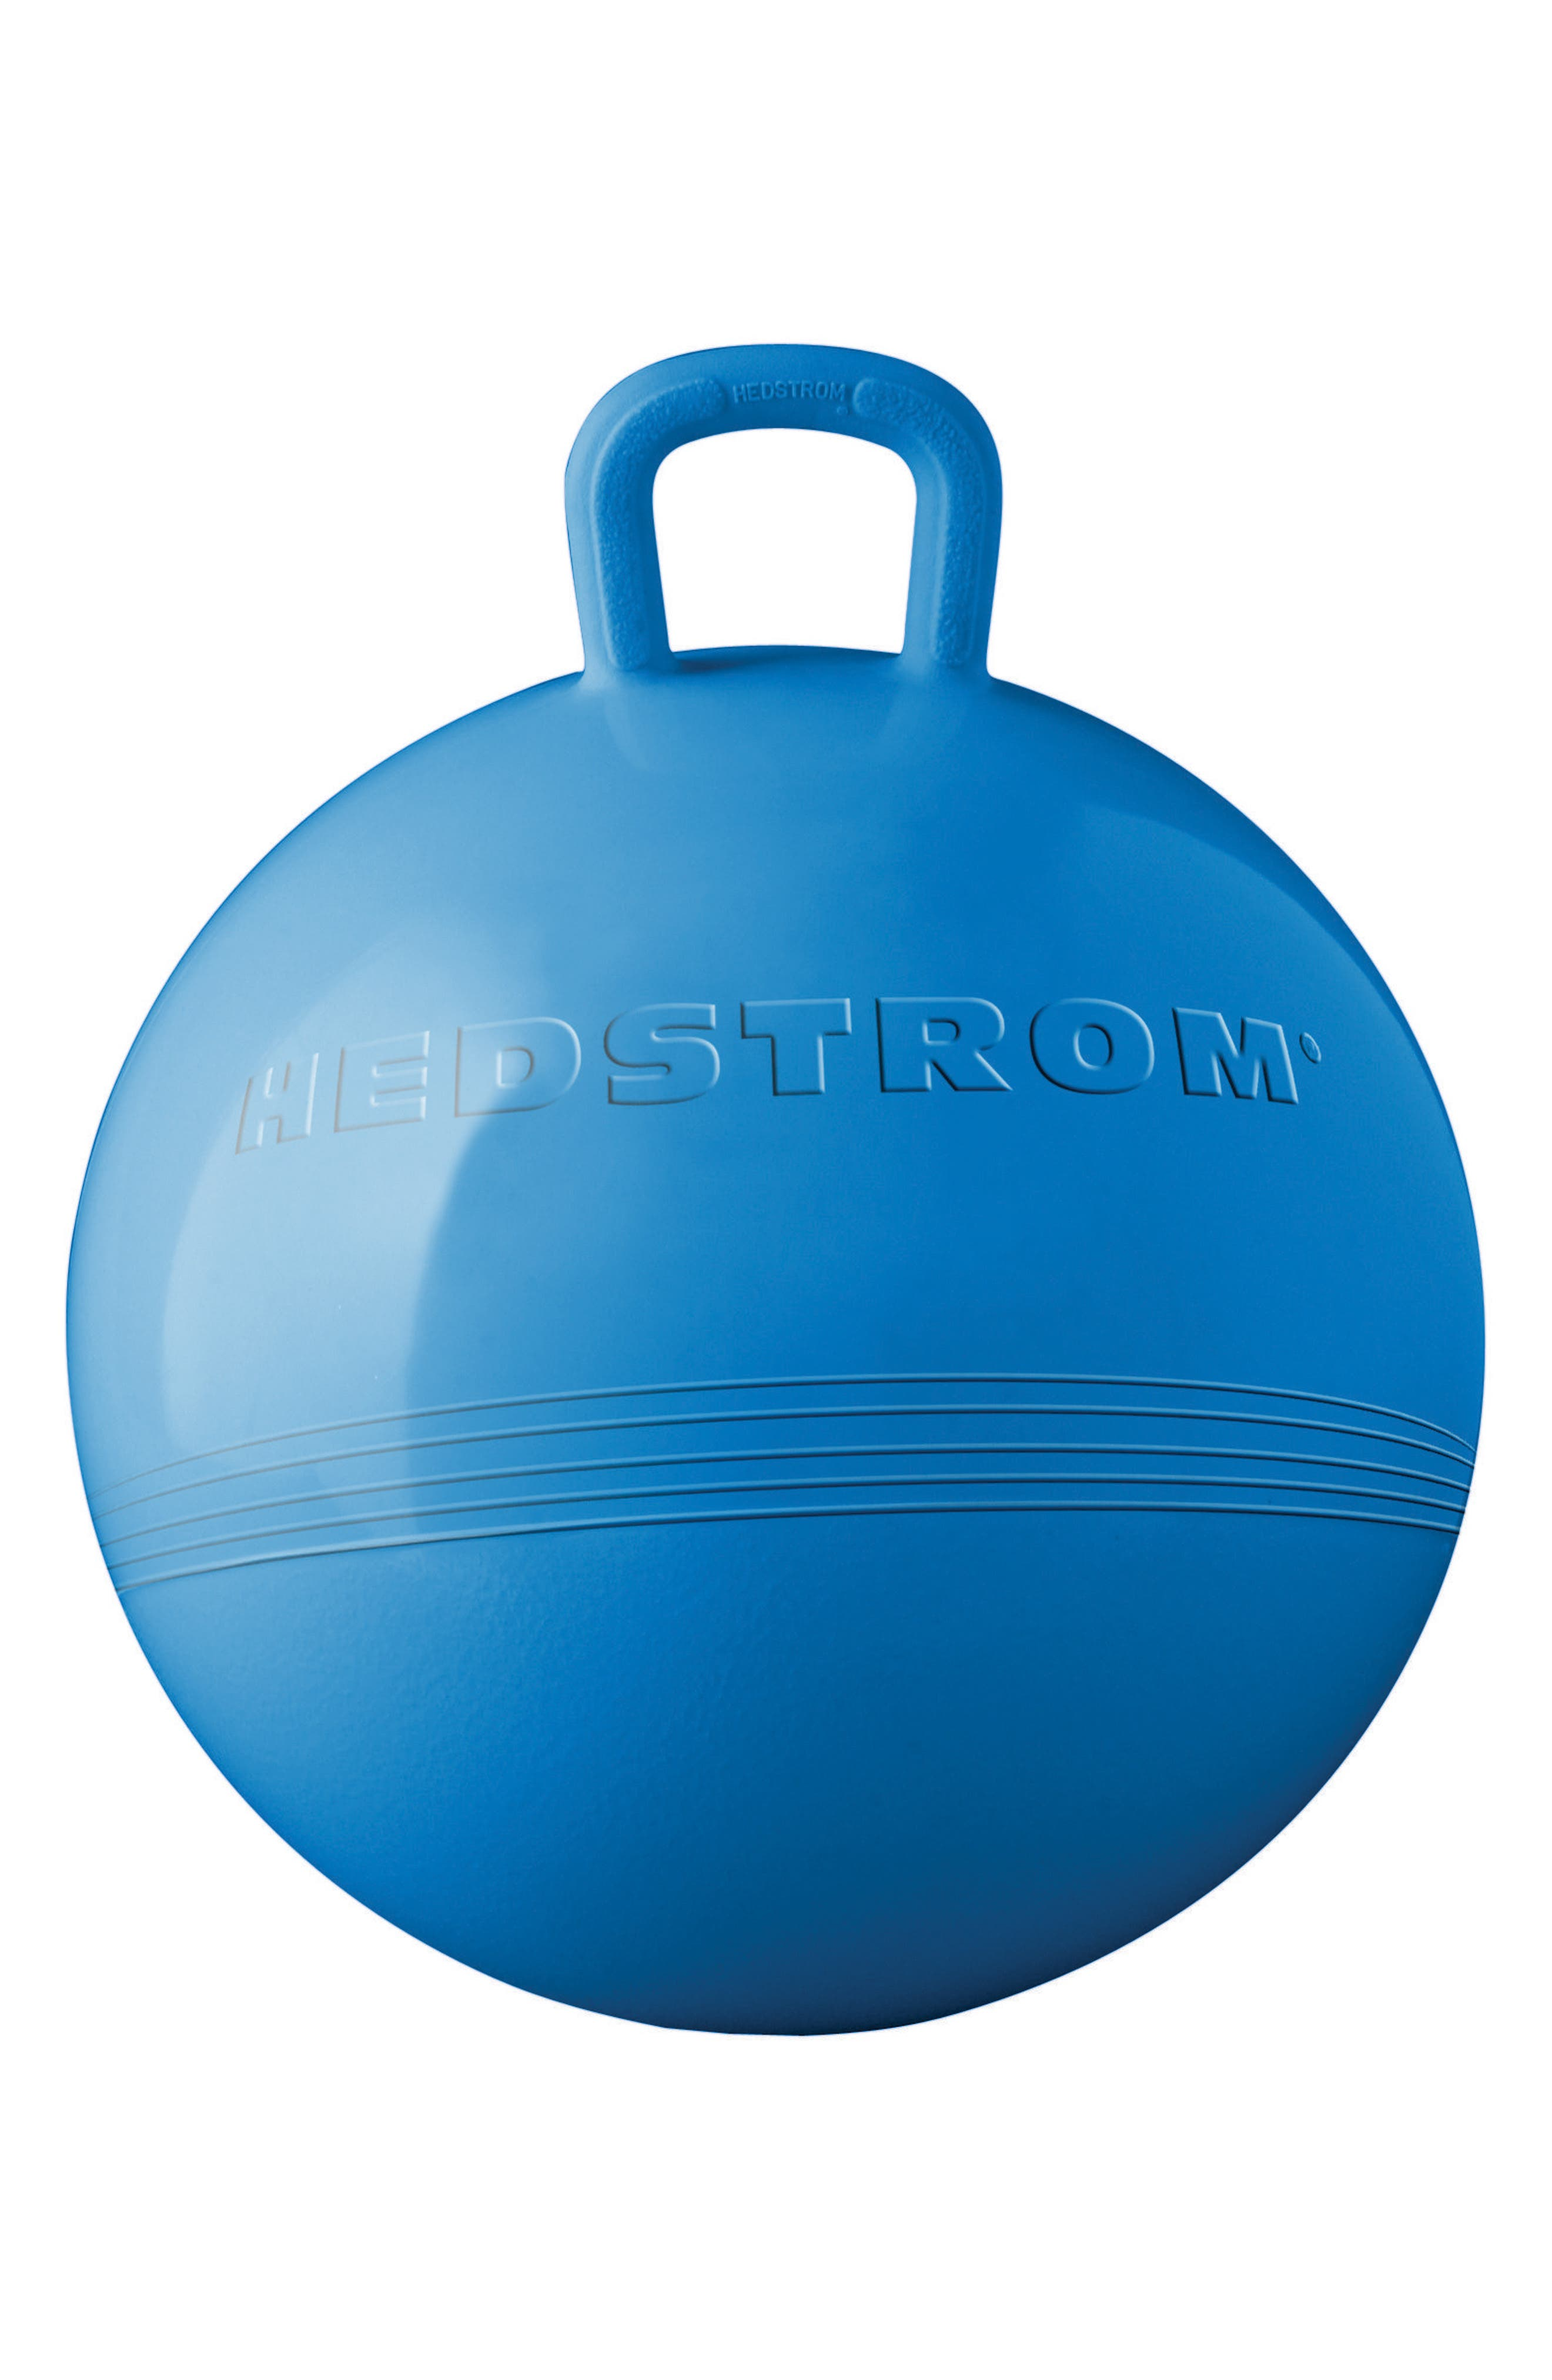 Hedstrom 15-Inch Hoppy Ball (Kids)